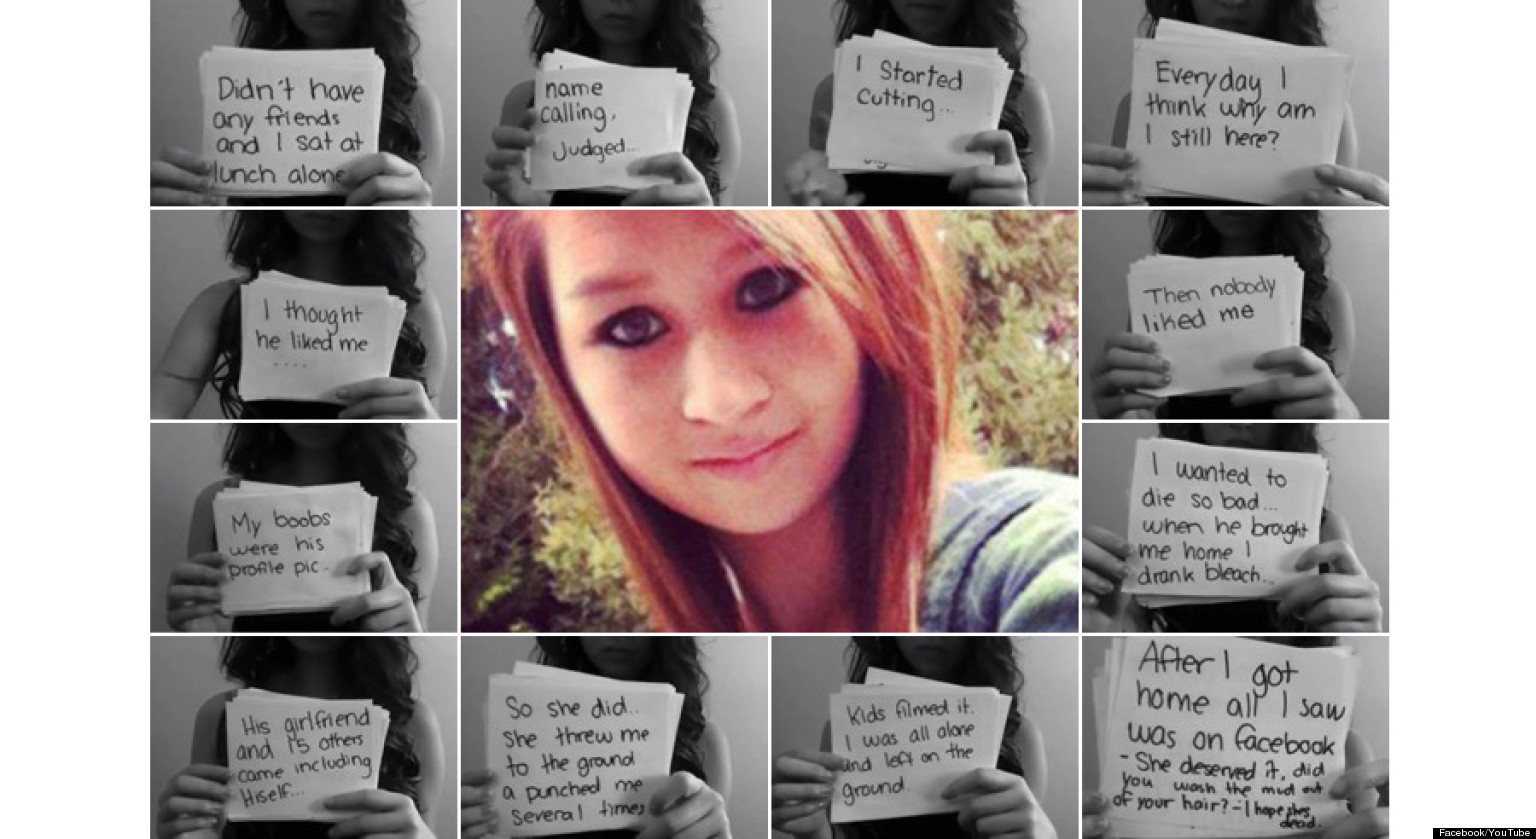 http://cyberbullying.org/amanda-todd-cyberbullying-and-suicide